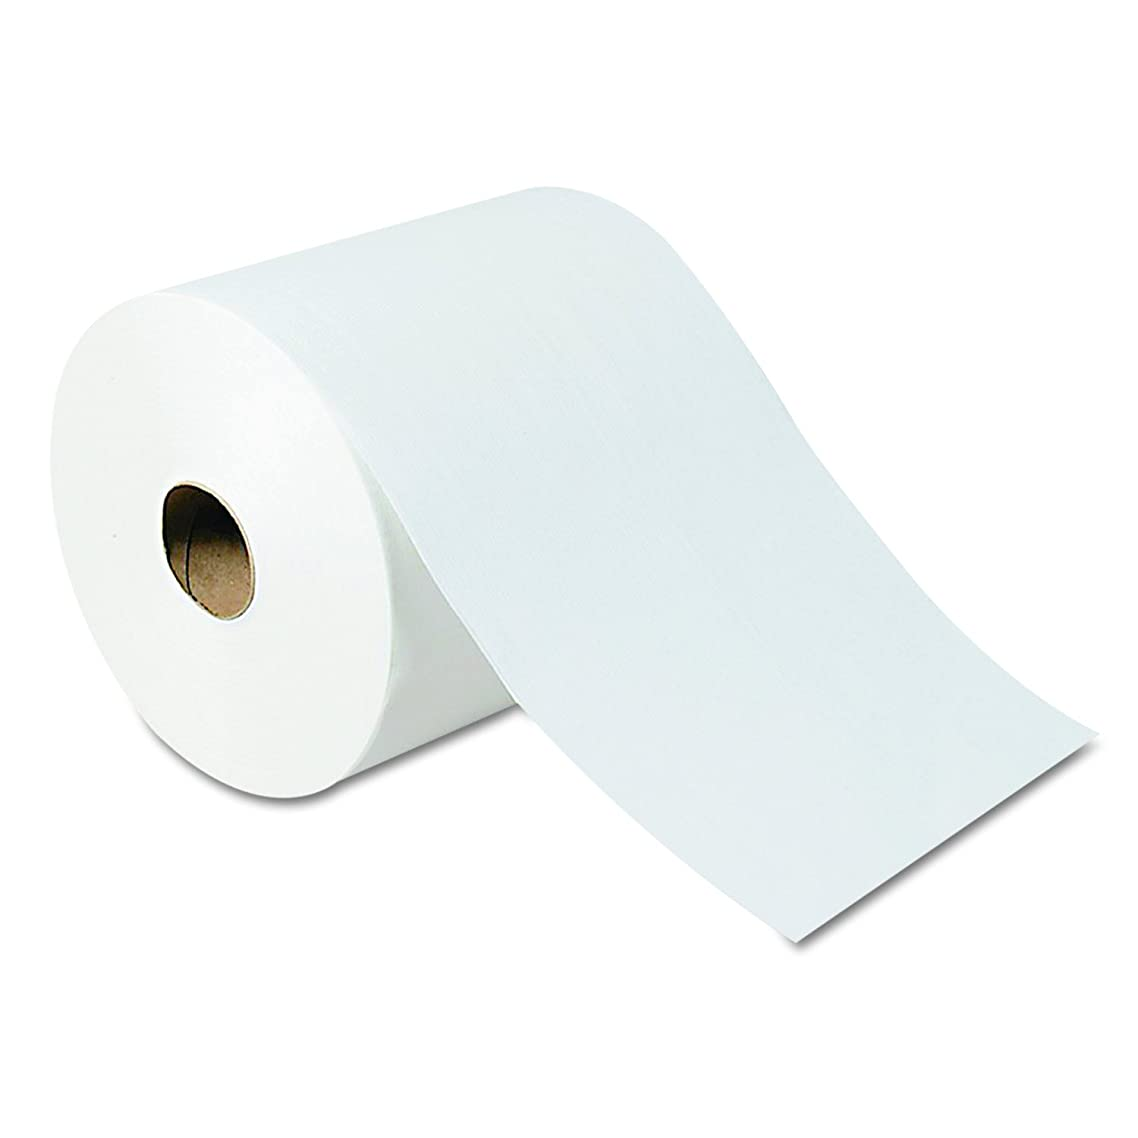 Pacific Blue Select Recycled Paper Towel Rolls (Previously Branded Preference) by GP PRO (Georgia-Pacific), White, 26100, 1000 Feet Per Roll, 6 Rolls Per Case